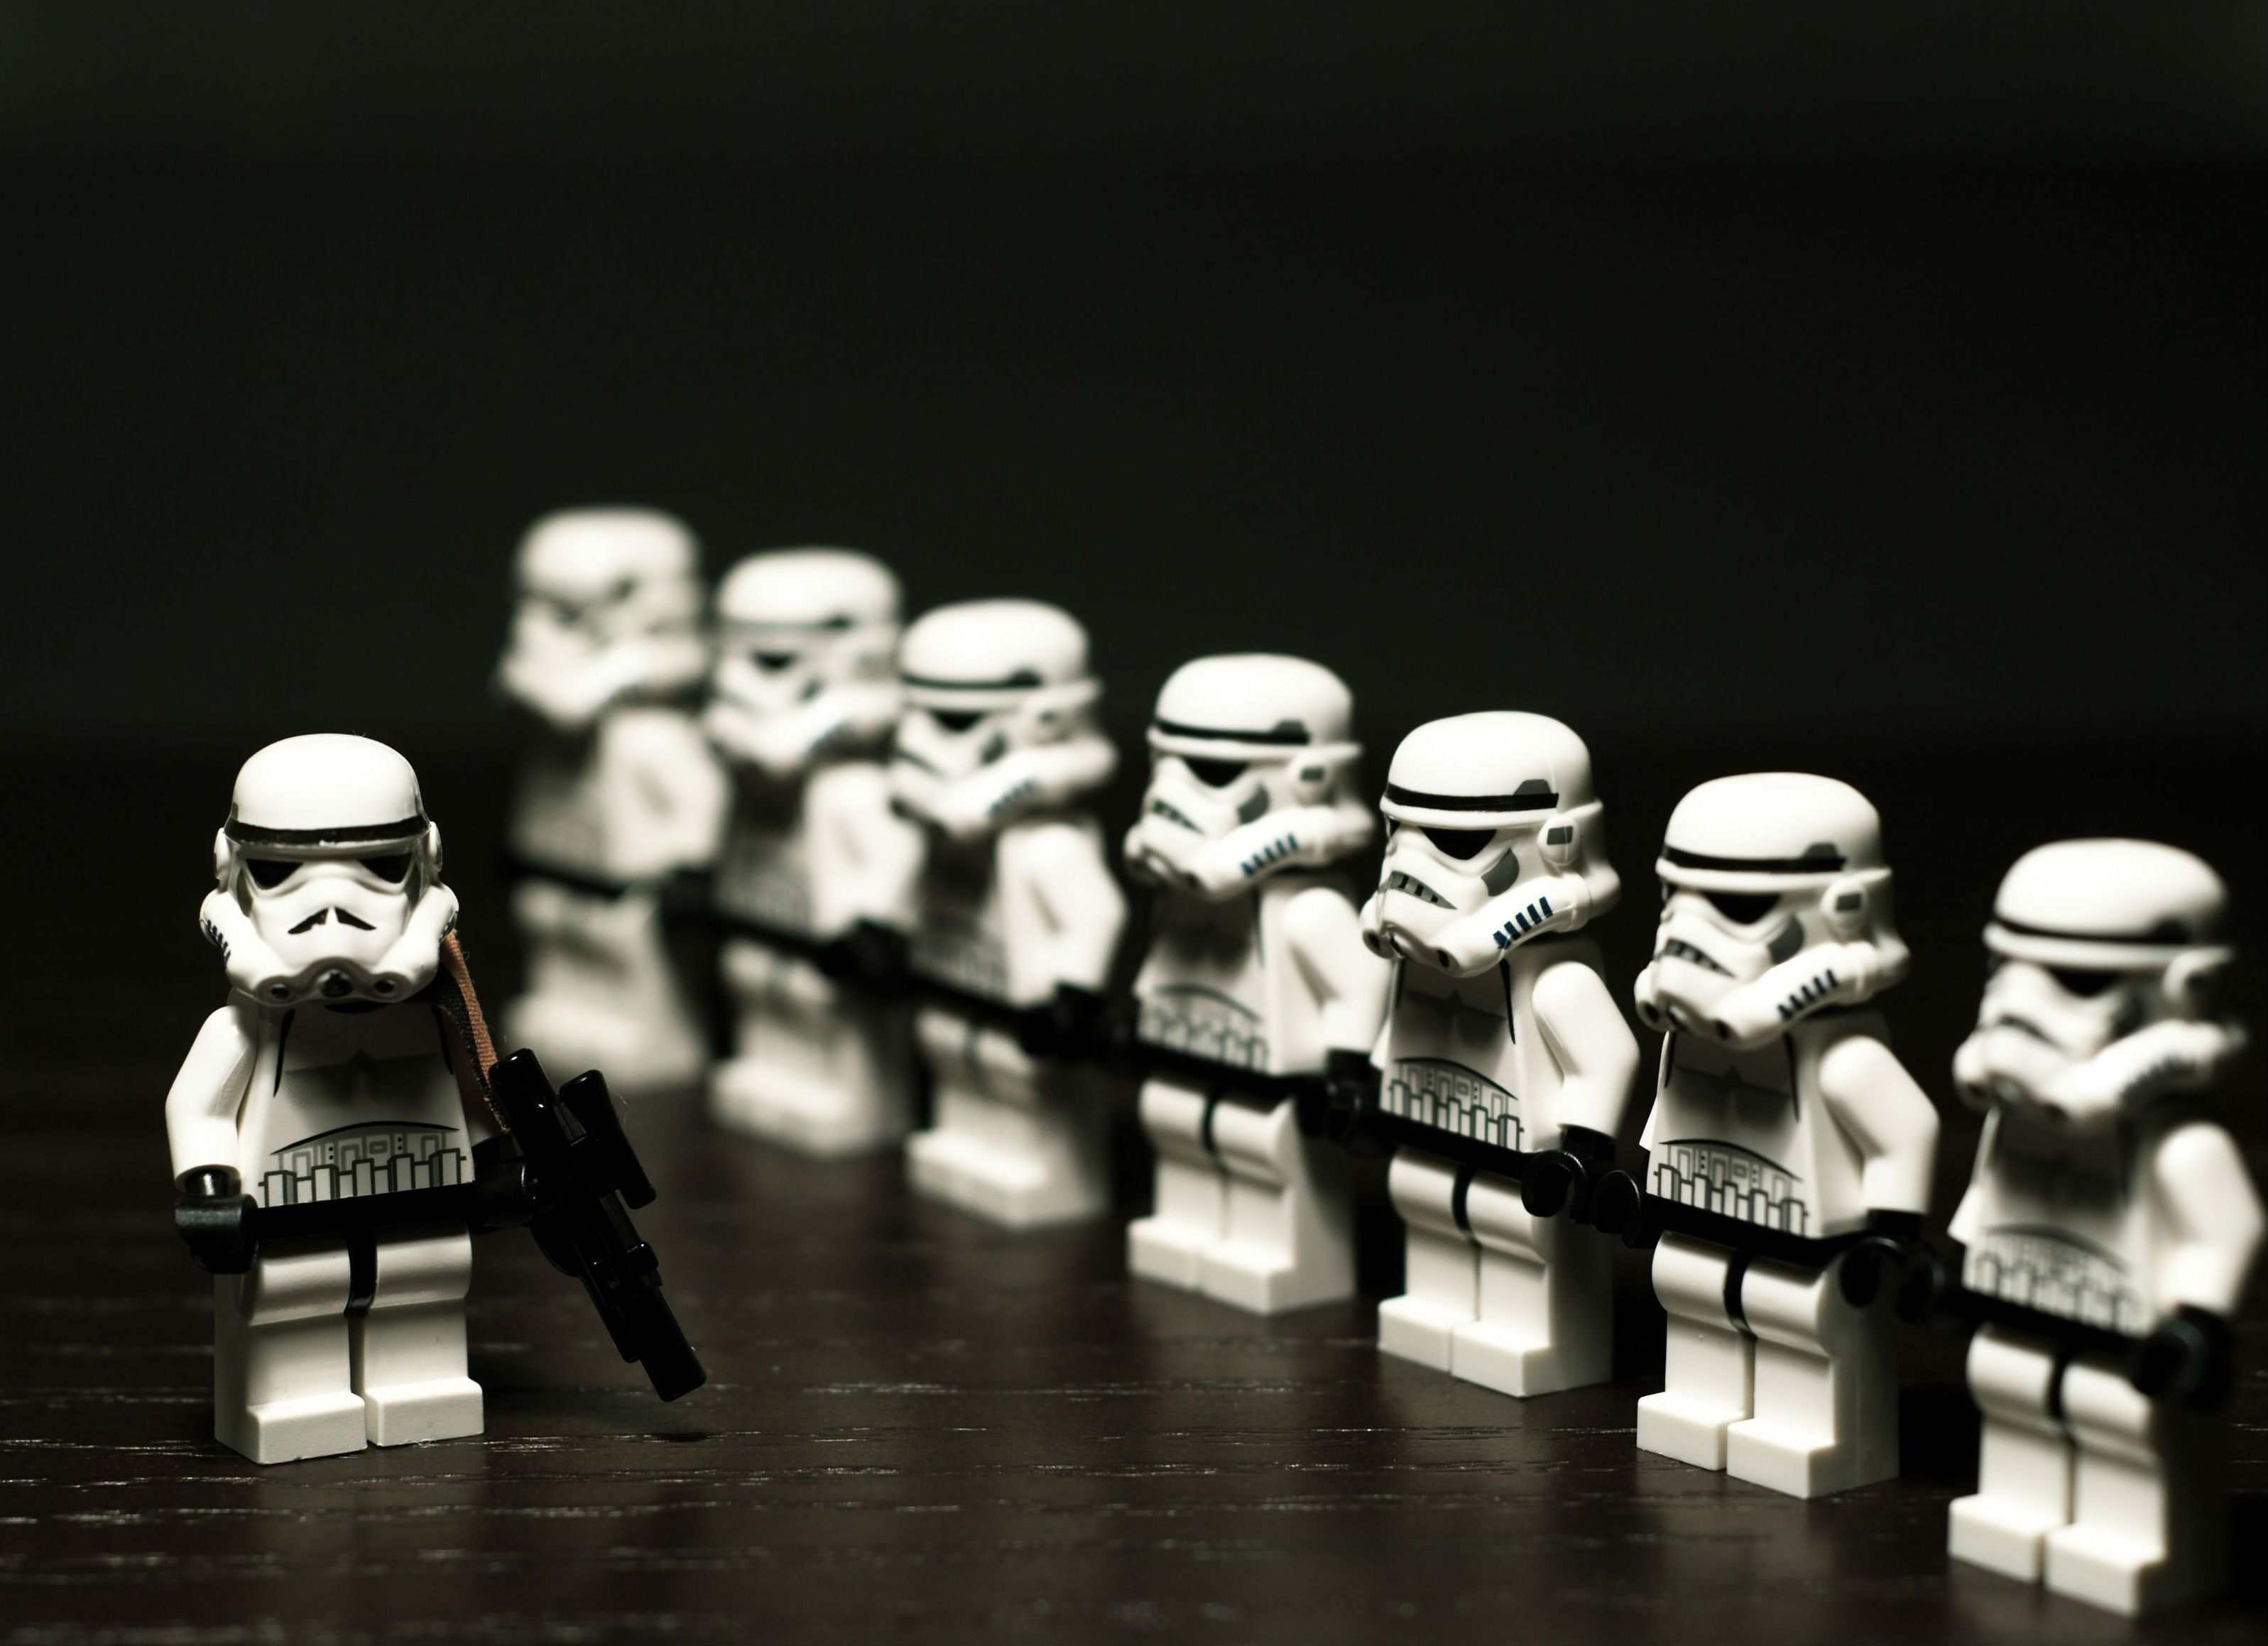 lego star wars wallpaper high resolution | movies wallpapers